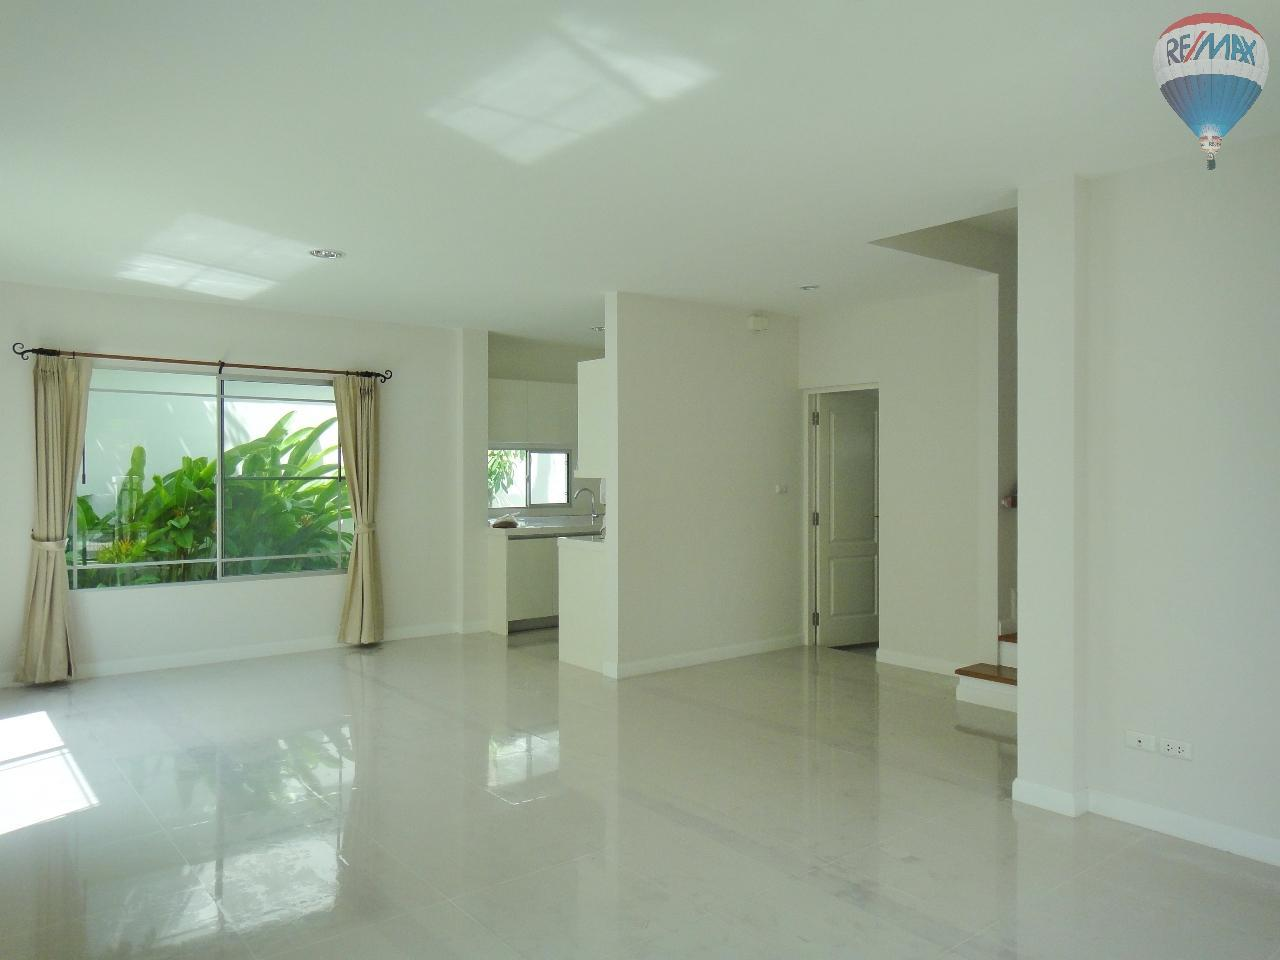 RE/MAX BestLife Agency's Nantawan Srinakarin Land and House for sale 3 bedroom 3 bathroom 64 sq.wah 168 sqm. 3